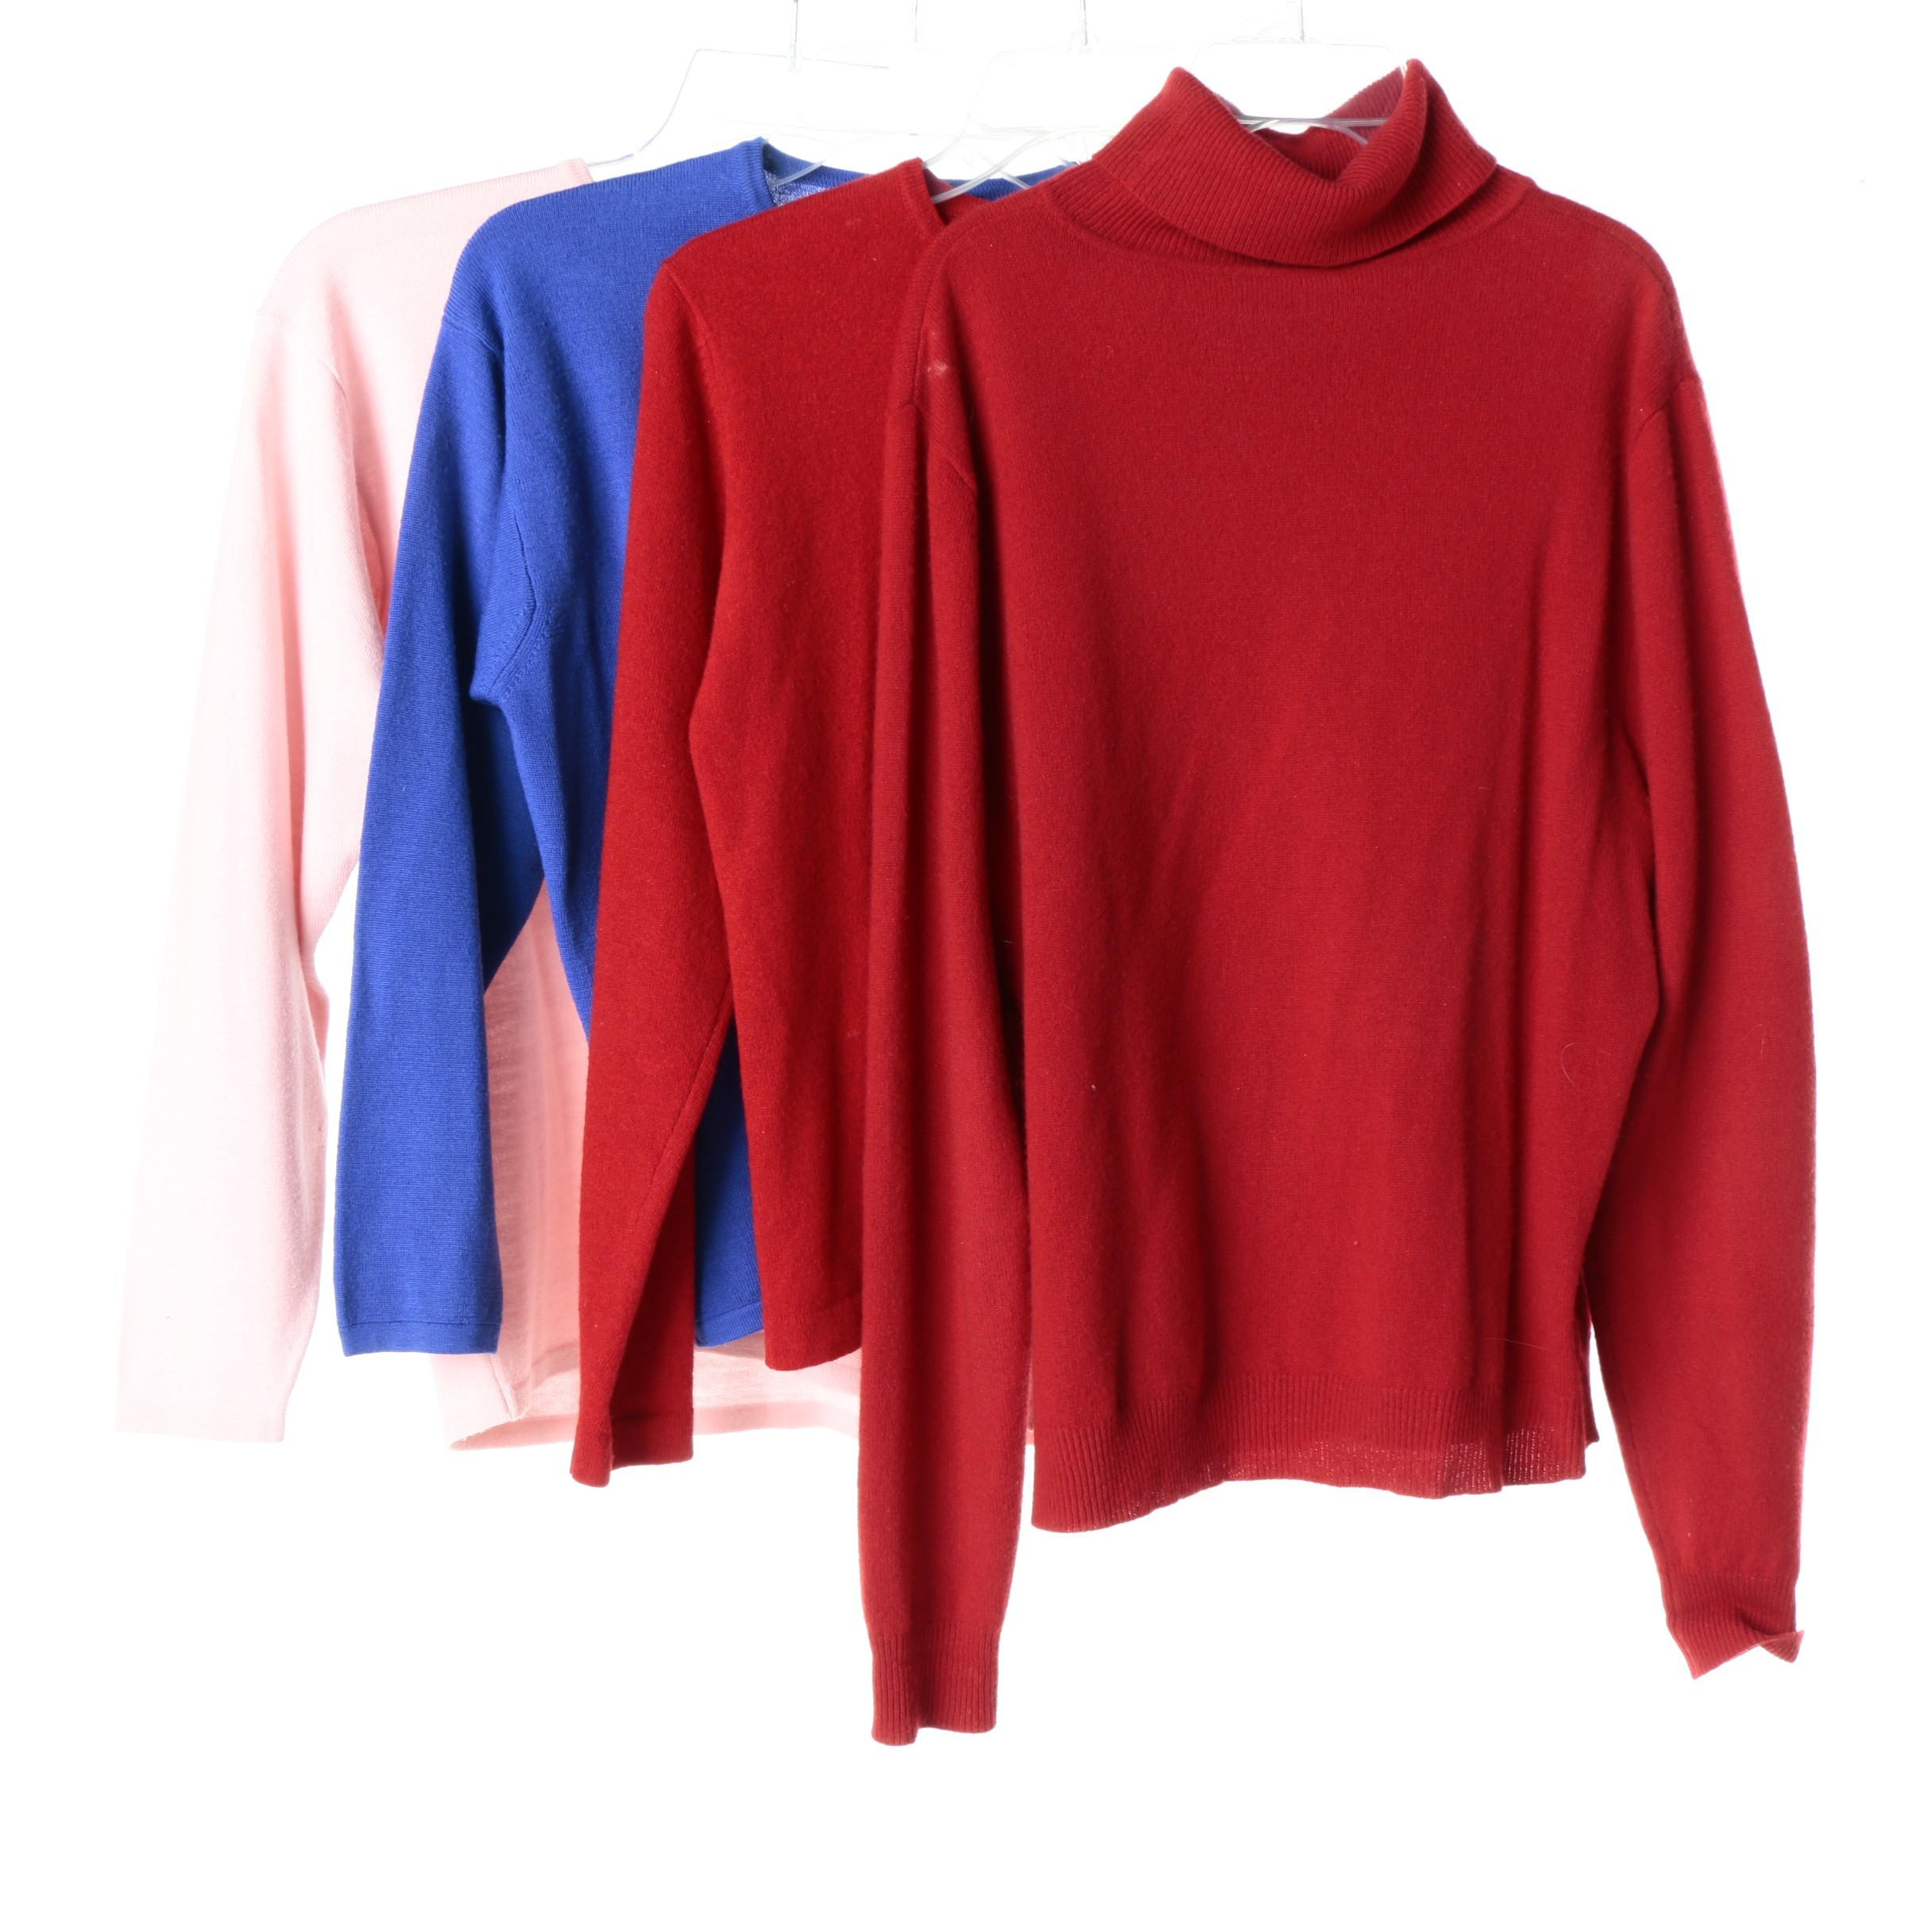 Women's Wool and Cashmere Sweaters Including Henri Bendel